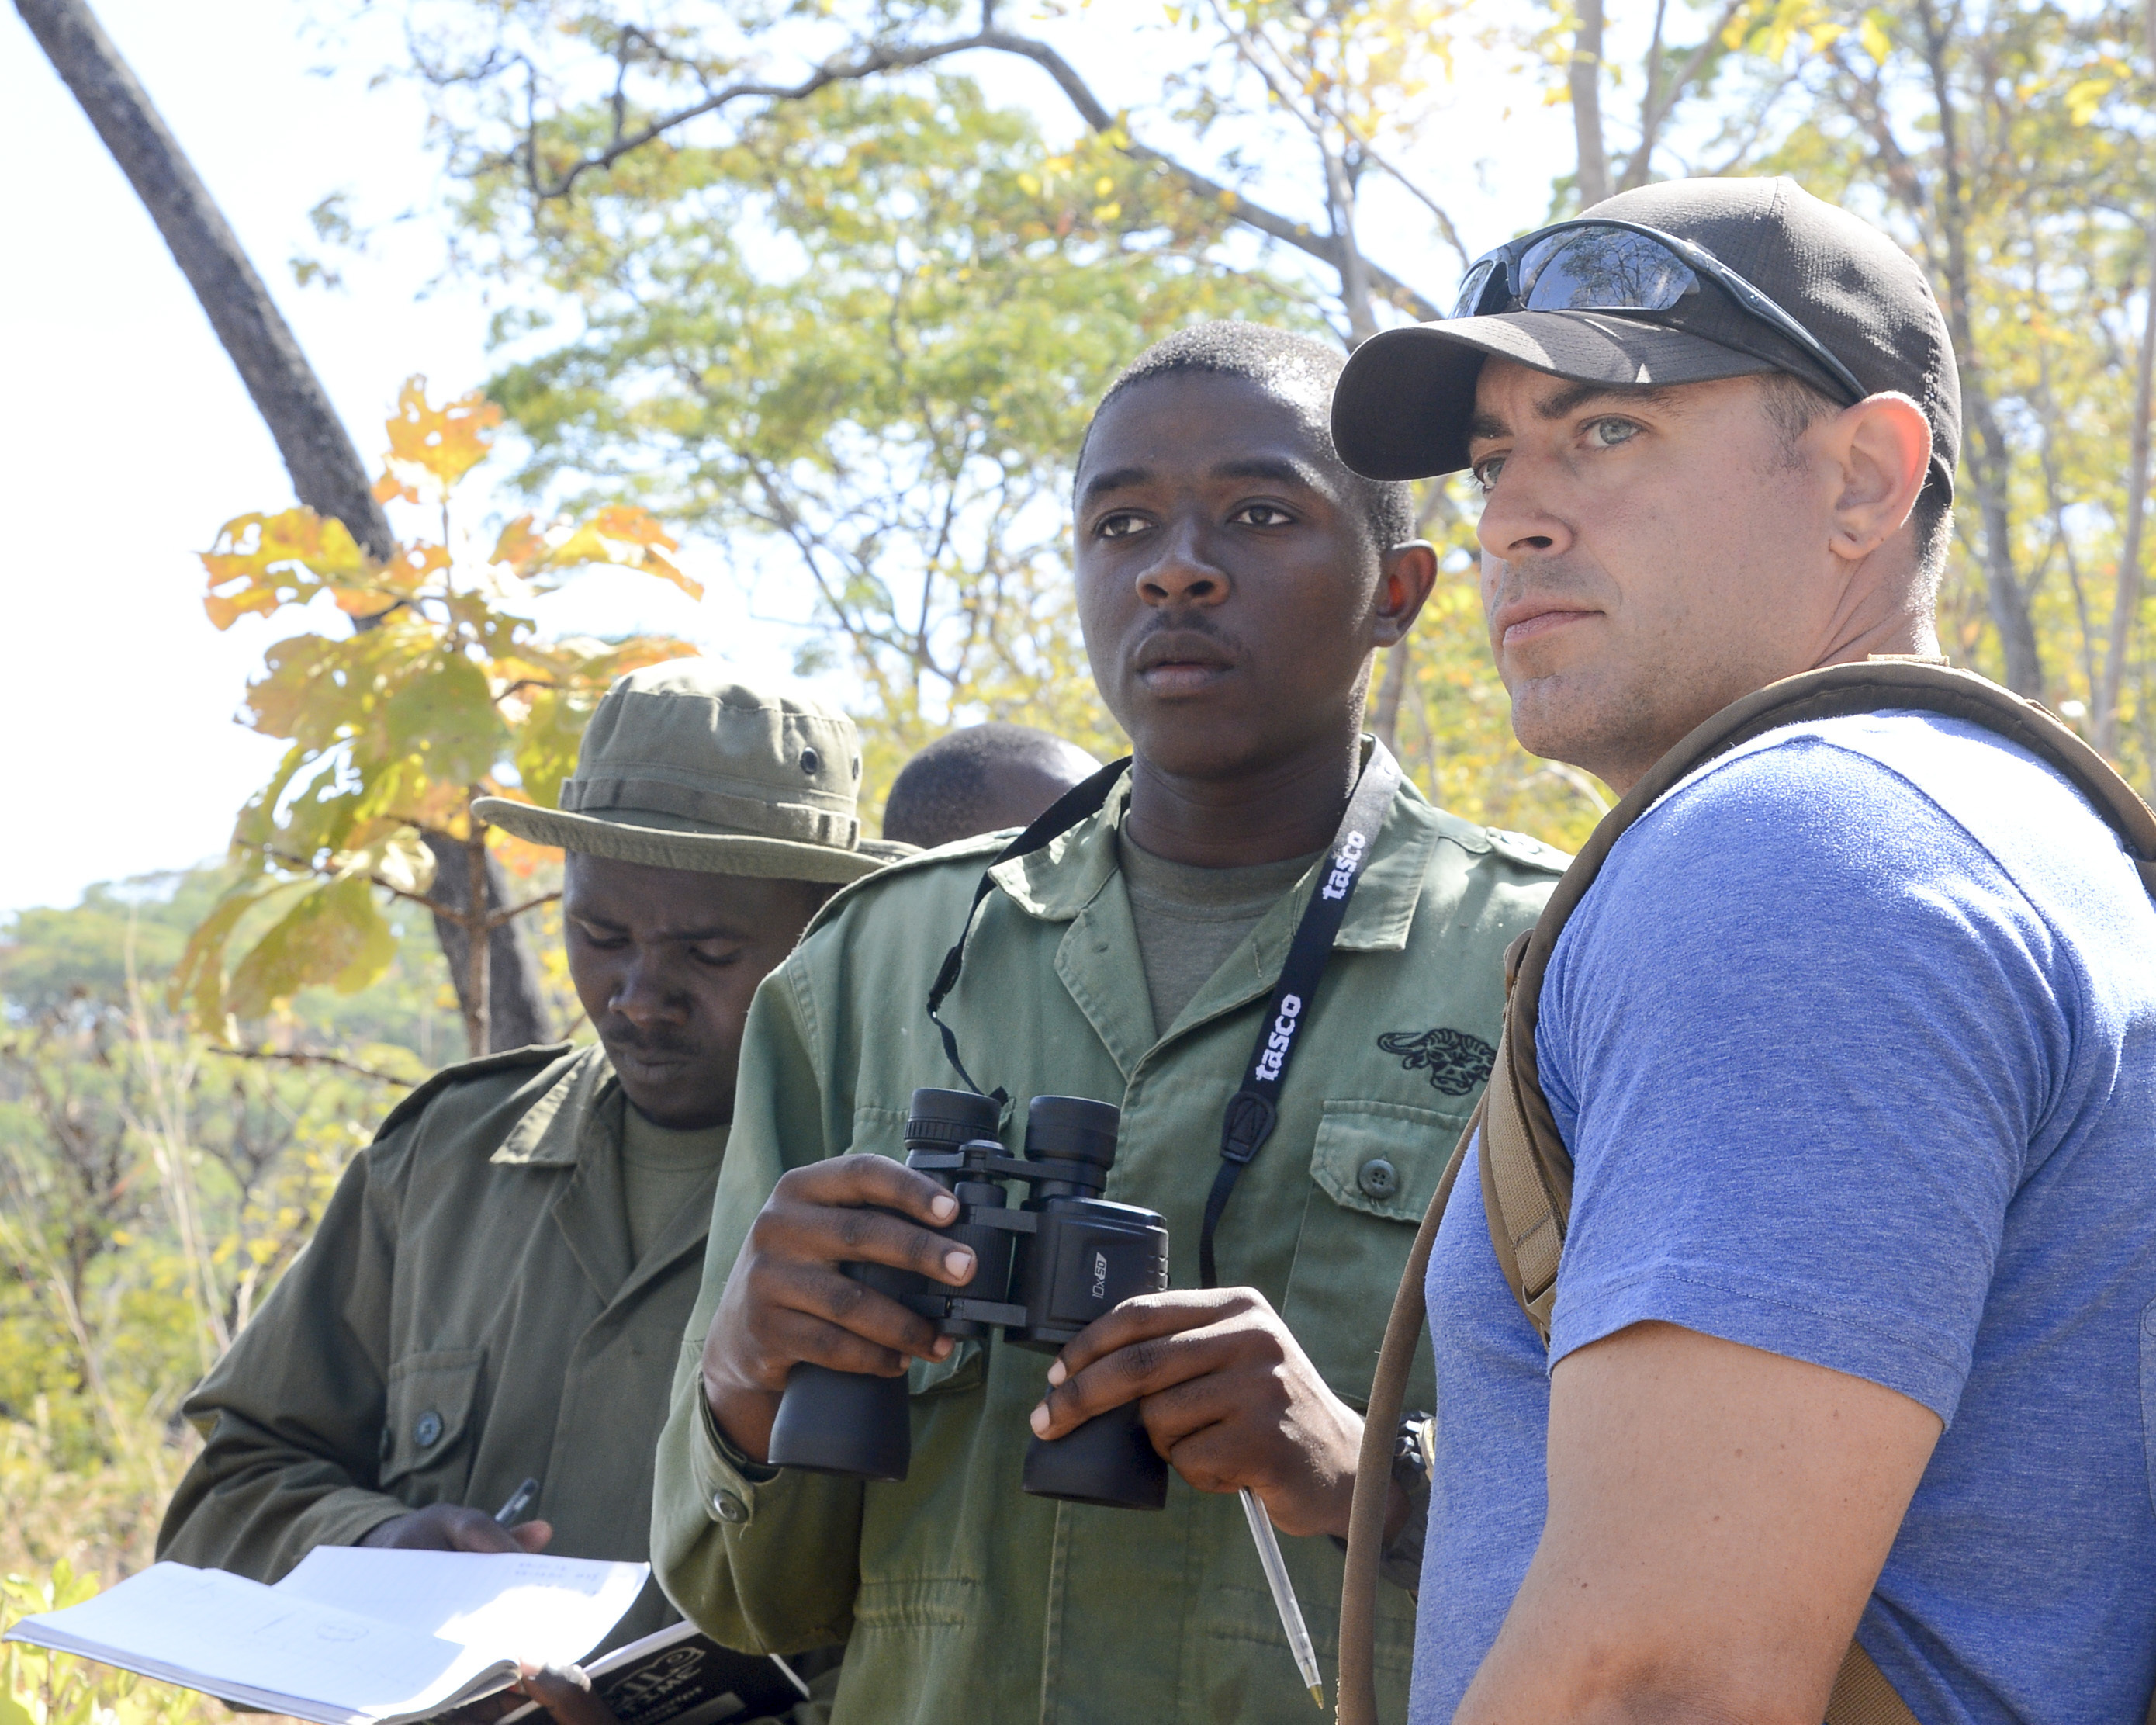 U.S. Army Staff Sgt. David Marcet, with the 404th Civil Affairs Battalion, assigned to Combined Joint Task Force-Horn of Africa, provides guidance during a ground surveillance practical exercise for Tanzania Wildlife Management Authority (TAWA) patrol game wardens during a Counter Illicit Trafficking course, in Ngwala, Tanzania, July 24, 2018. The course provided by  with the 404th Civil Affairs Battalion is a month-long course to enhance TAWA's anti-poaching capabilities in Tanzania. (U.S. Navy Photo by Mass Communication Specialist 2nd Class Timothy M. Ahearn)